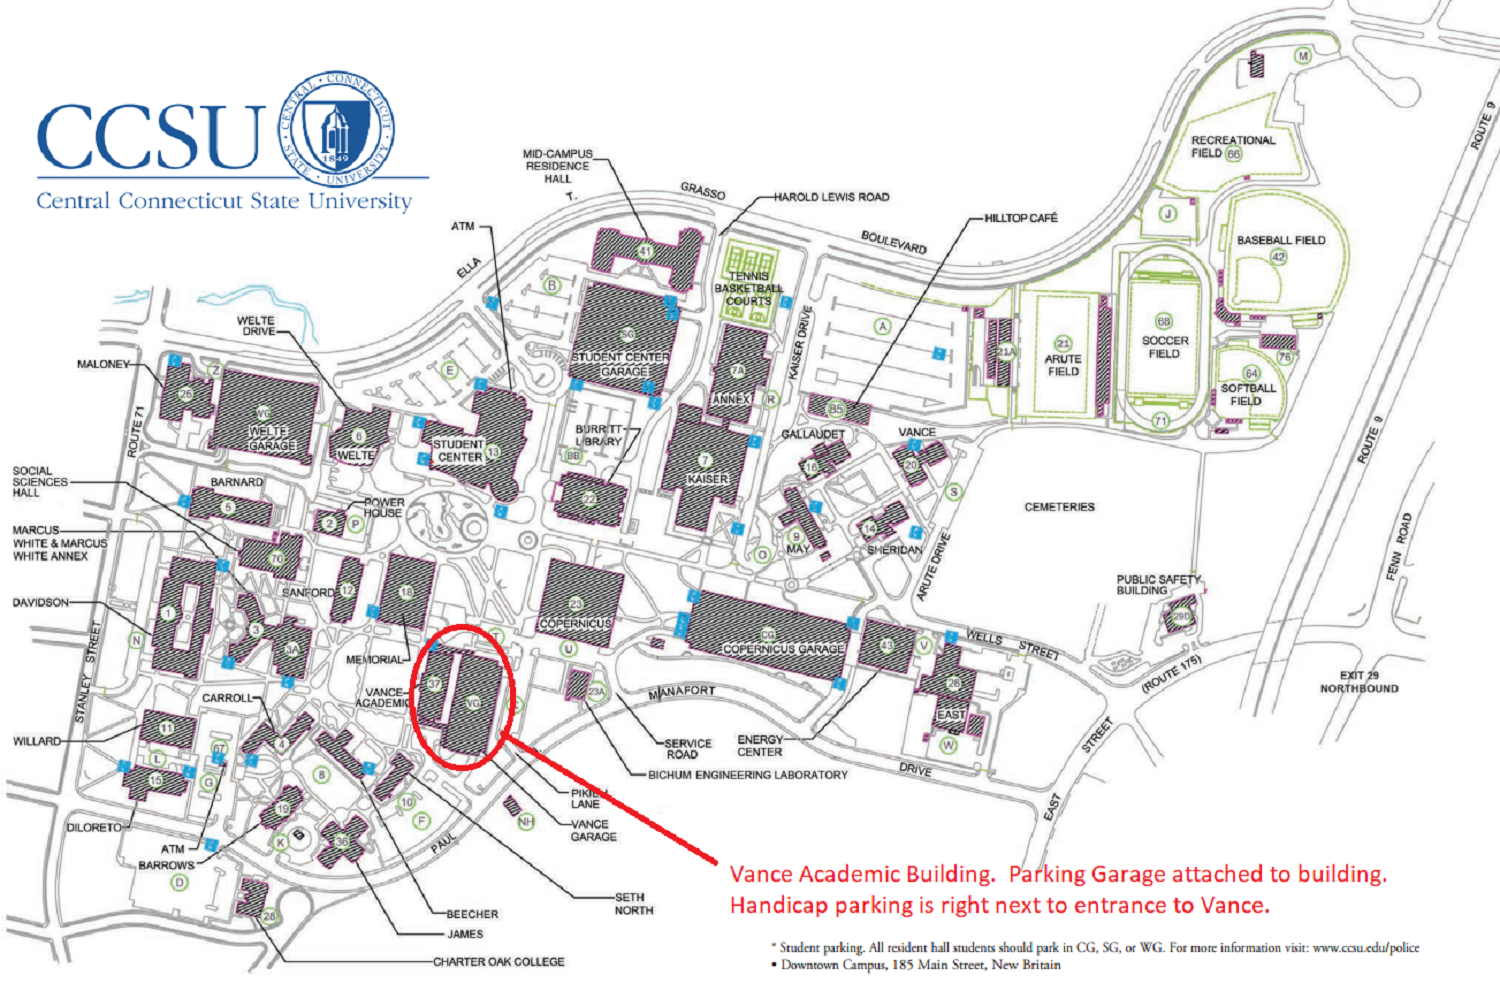 Ccsu Campus Map In Memoriam Brian M. O'Connell